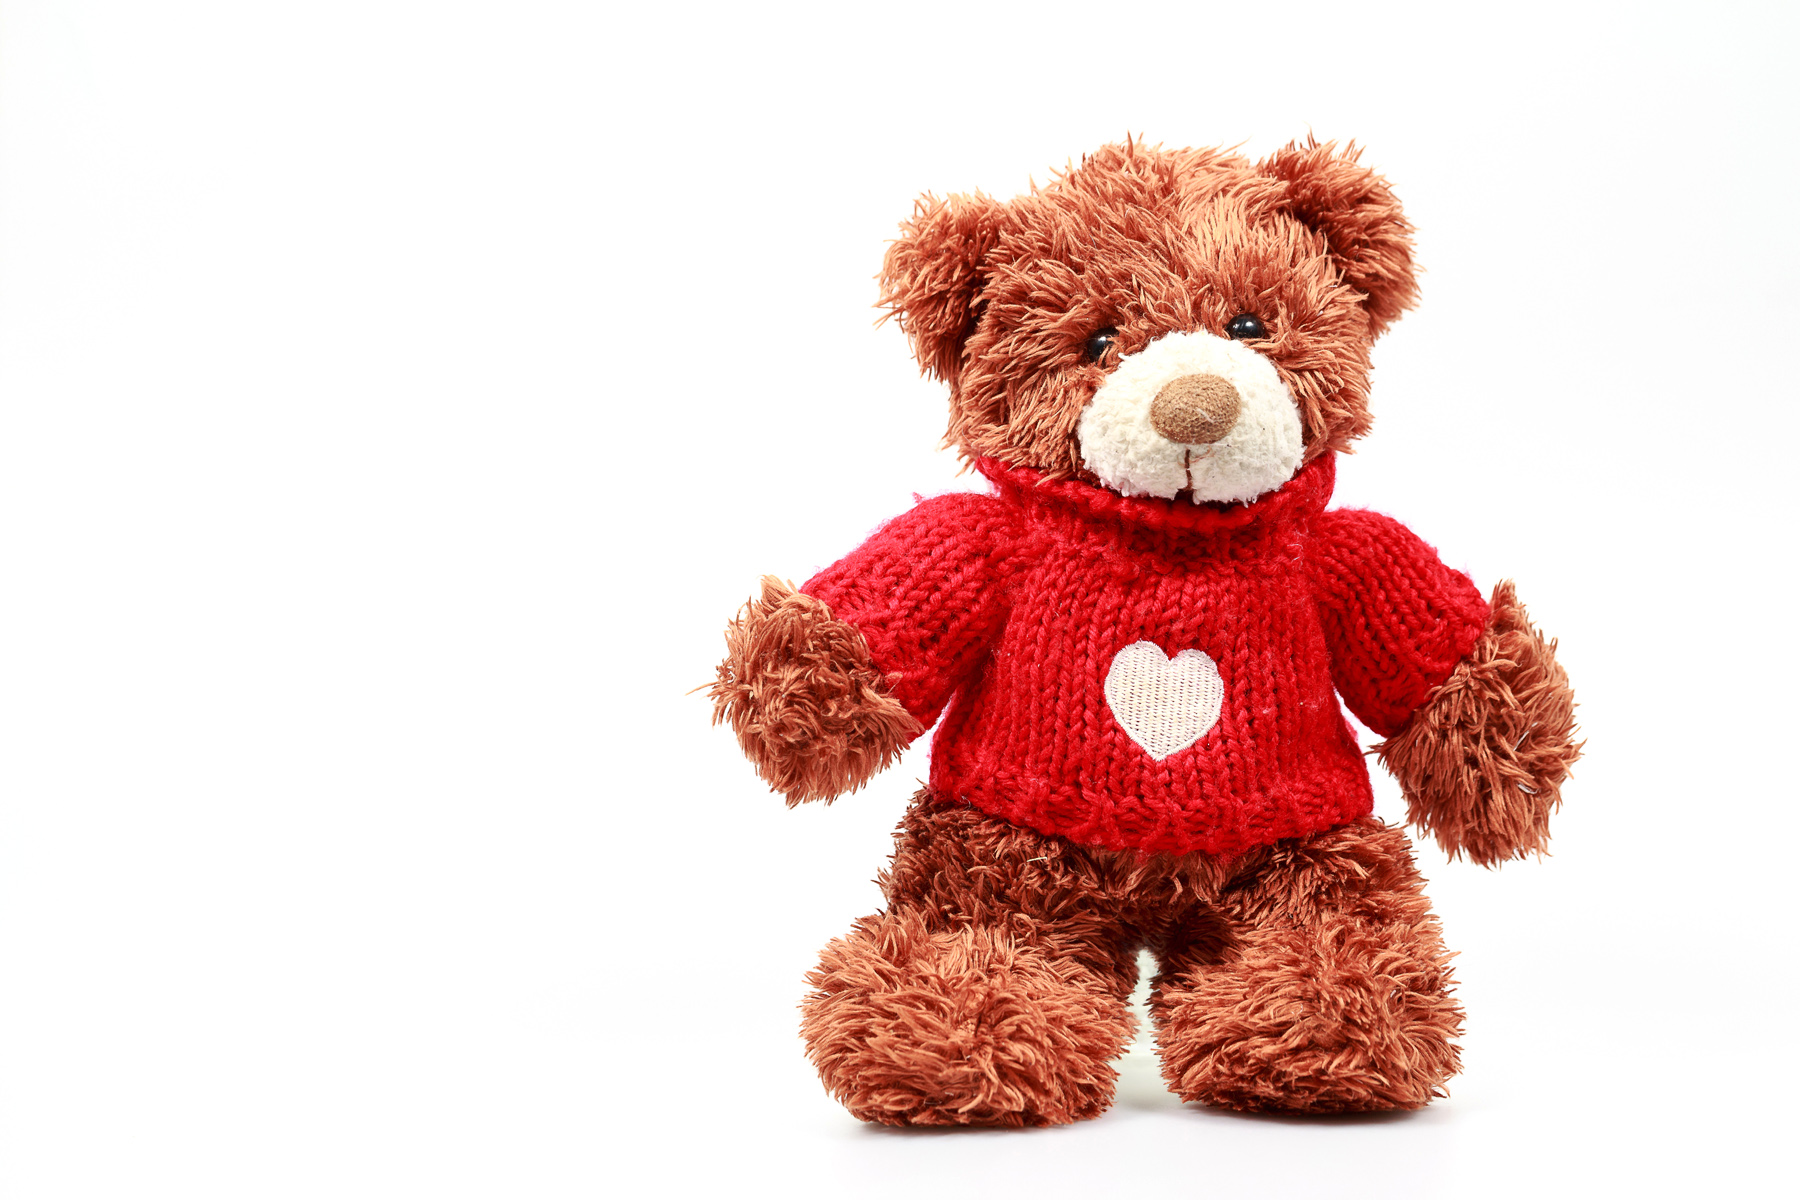 Teddy bear 52652